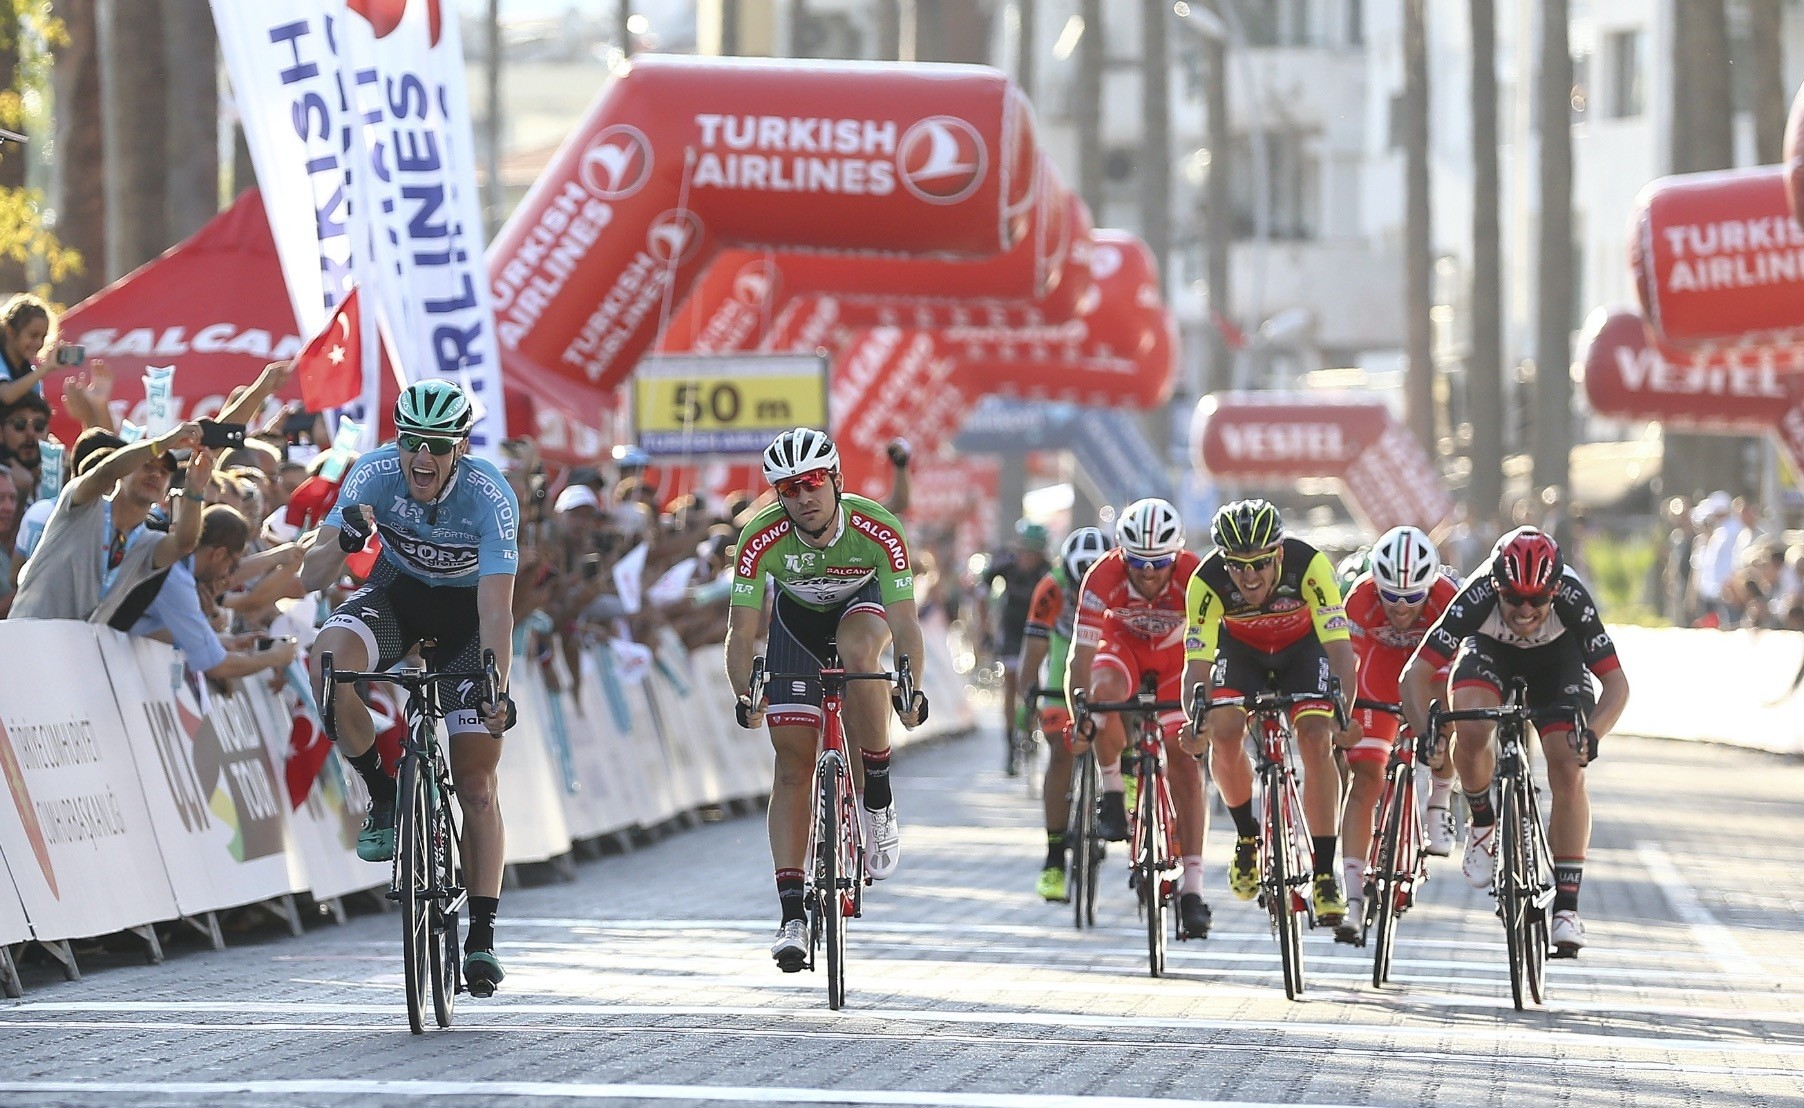 Irish cyclist Sam Bennett is now ready to return to Turkey and its annual feast of world-class sprinting in a bid to reprise the form that saw him dominate the sprints last year.